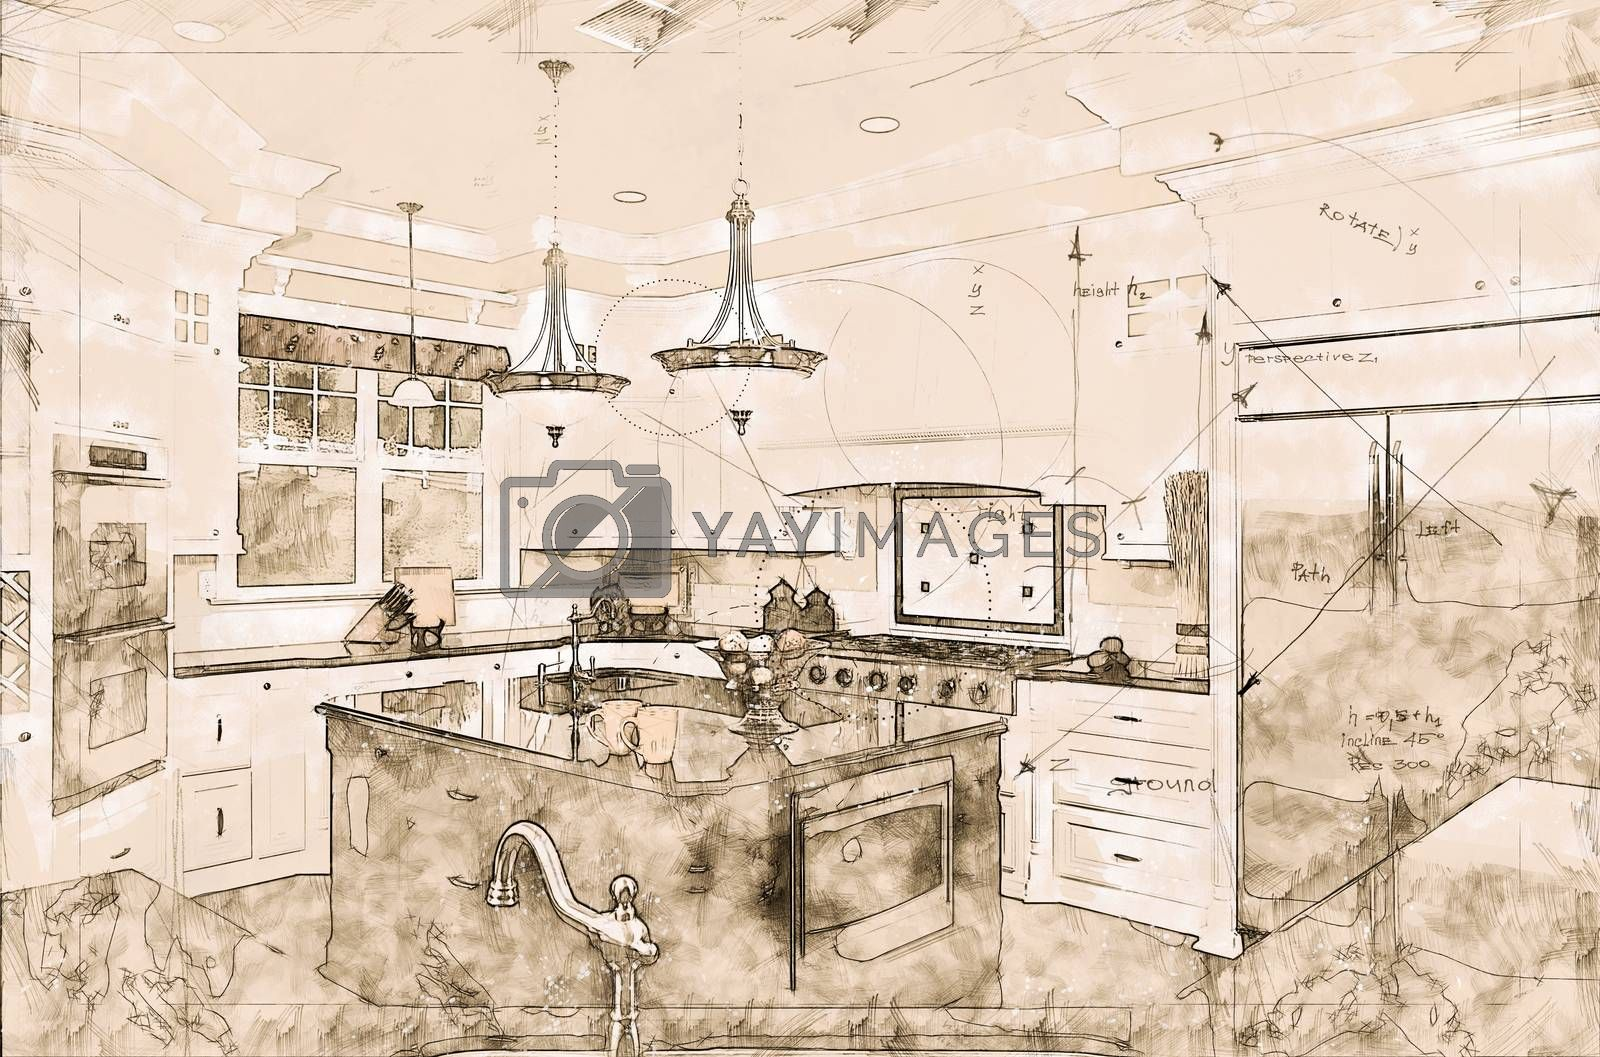 Beautiful Custom Kitchen Concept Design Drawing by Feverpitched